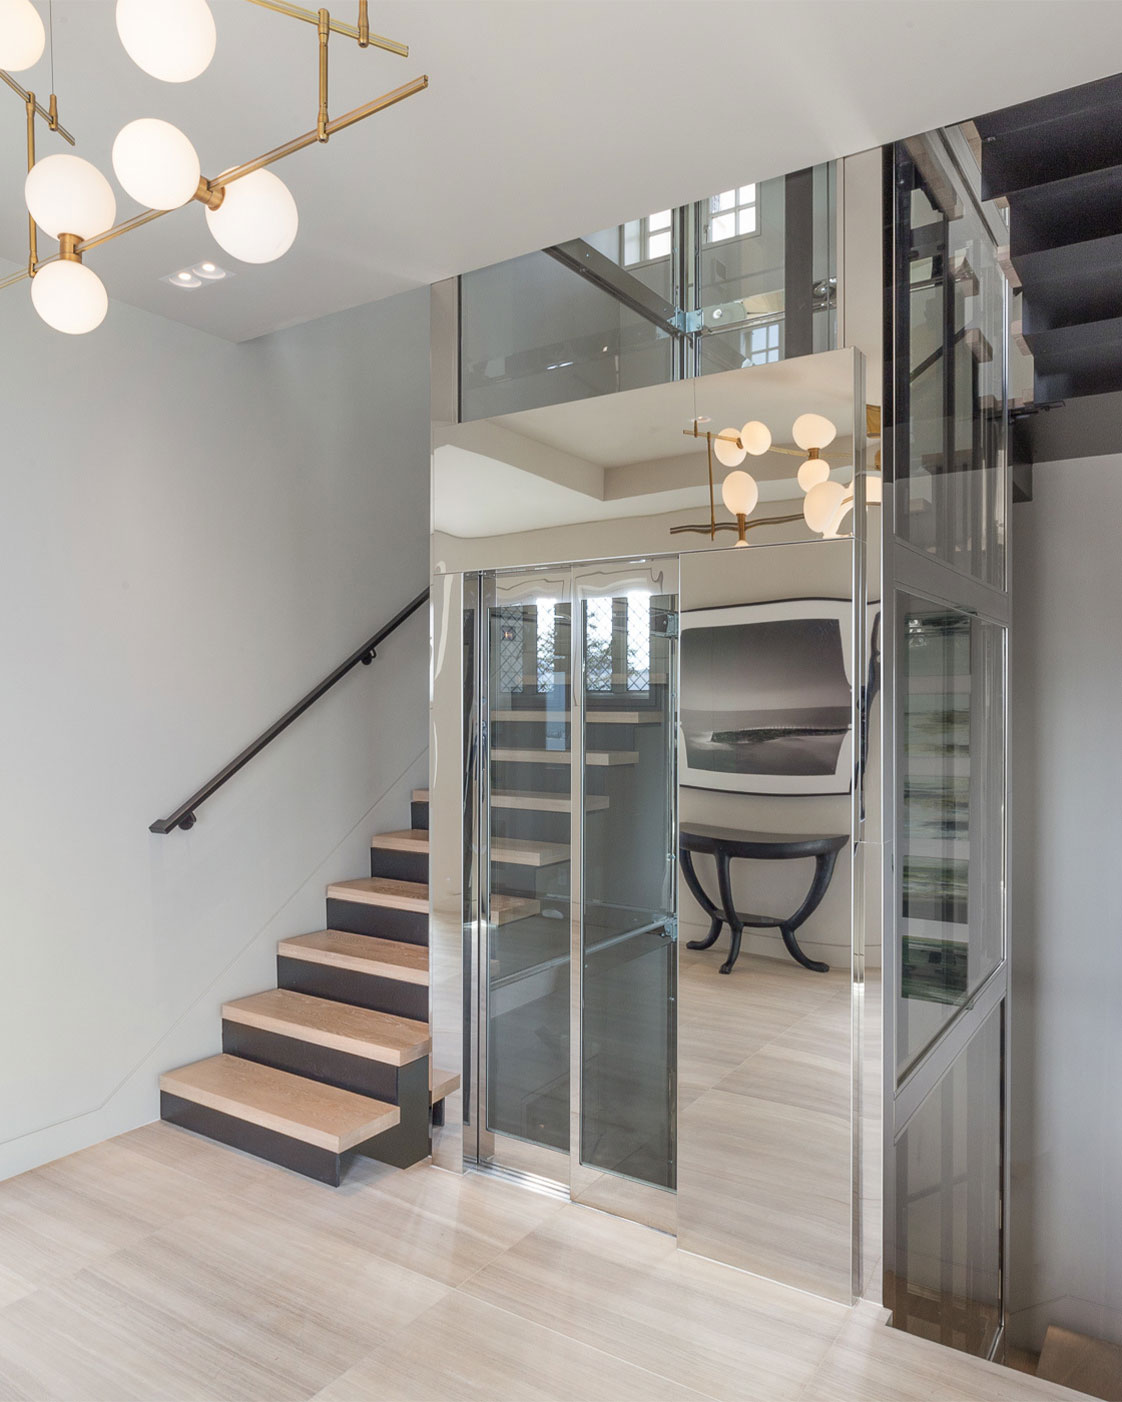 Residential Glass-Enclosed Elevator at Residence 950 Interior San Francisco California